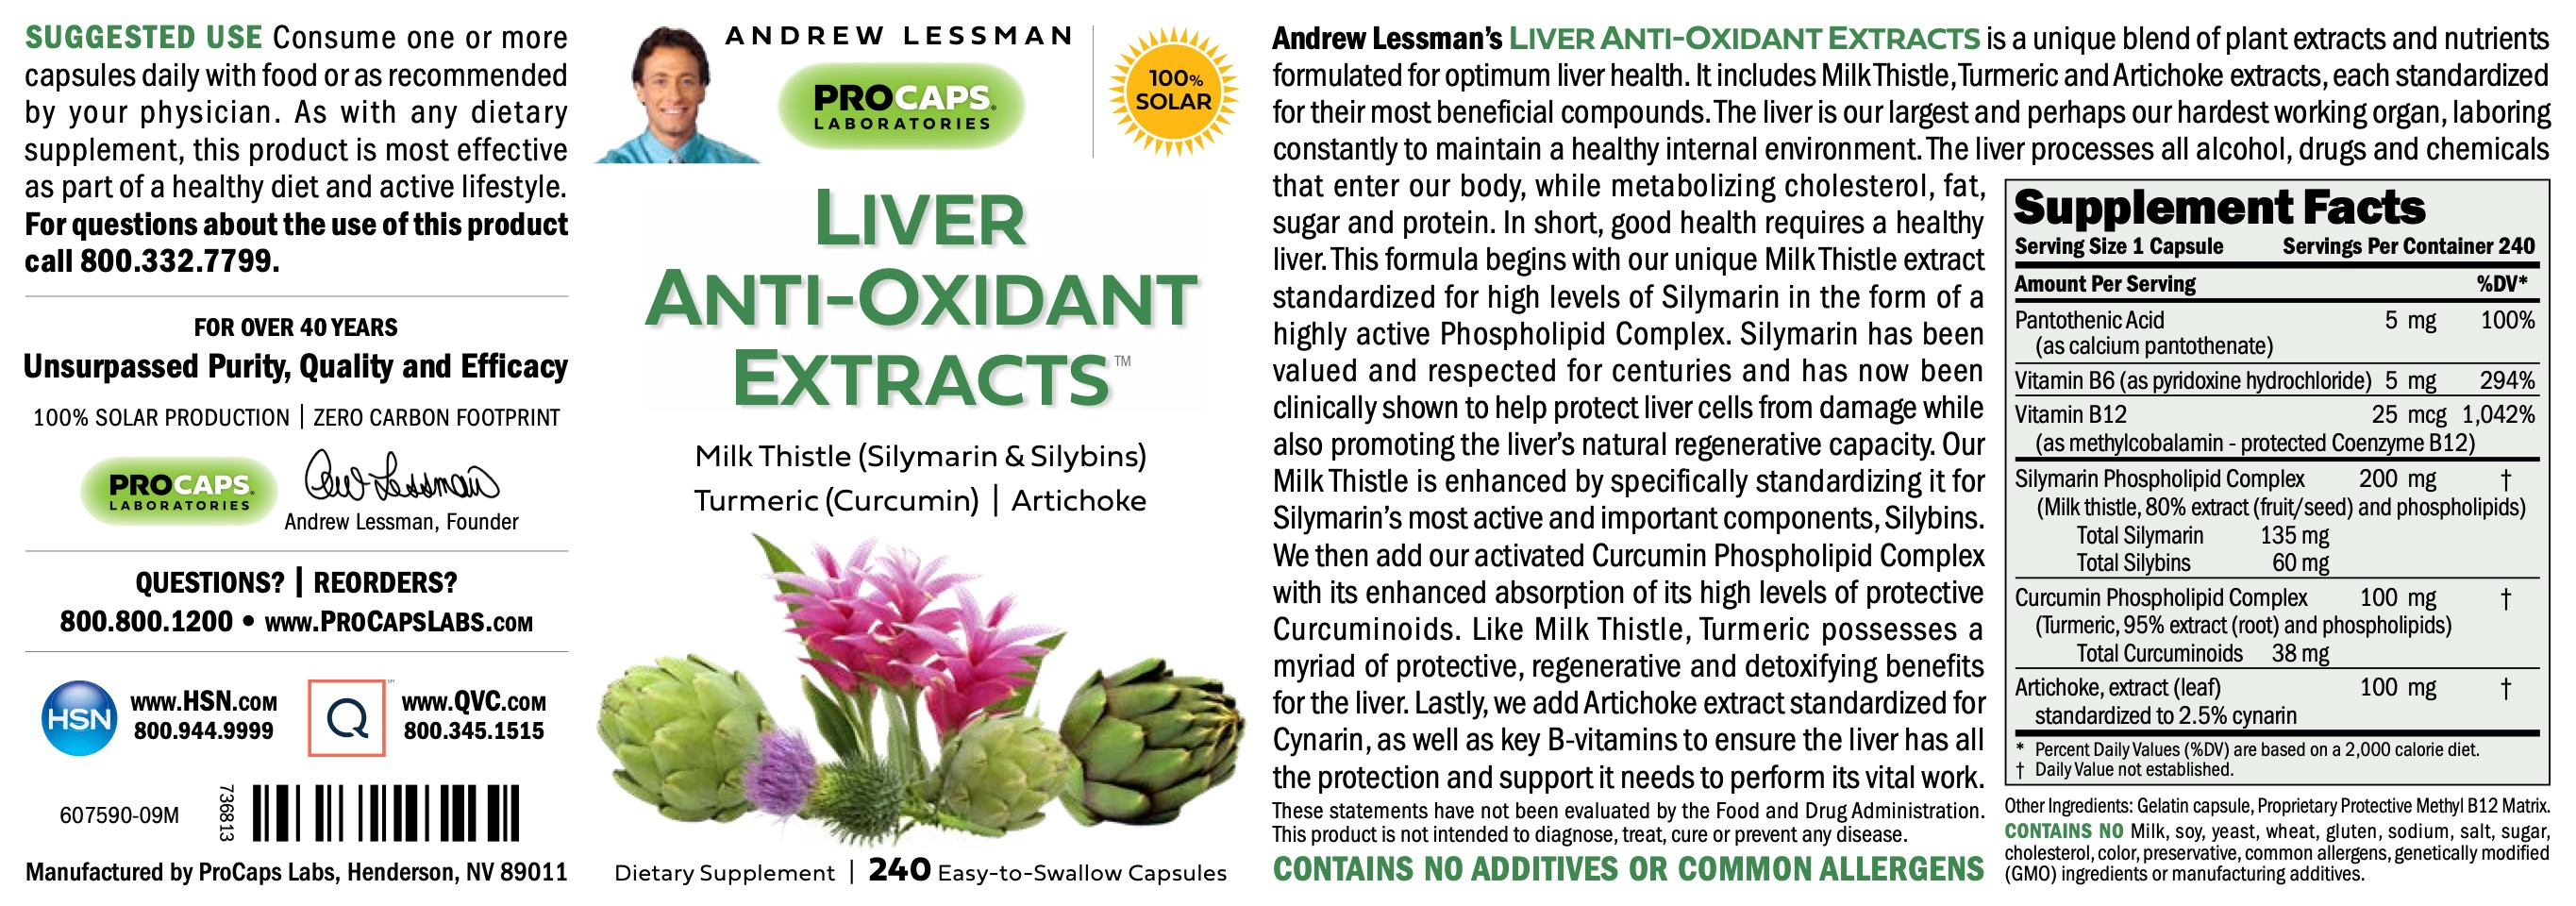 Liver-Anti-Oxidant-Extracts-Capsules-Anti-oxidants